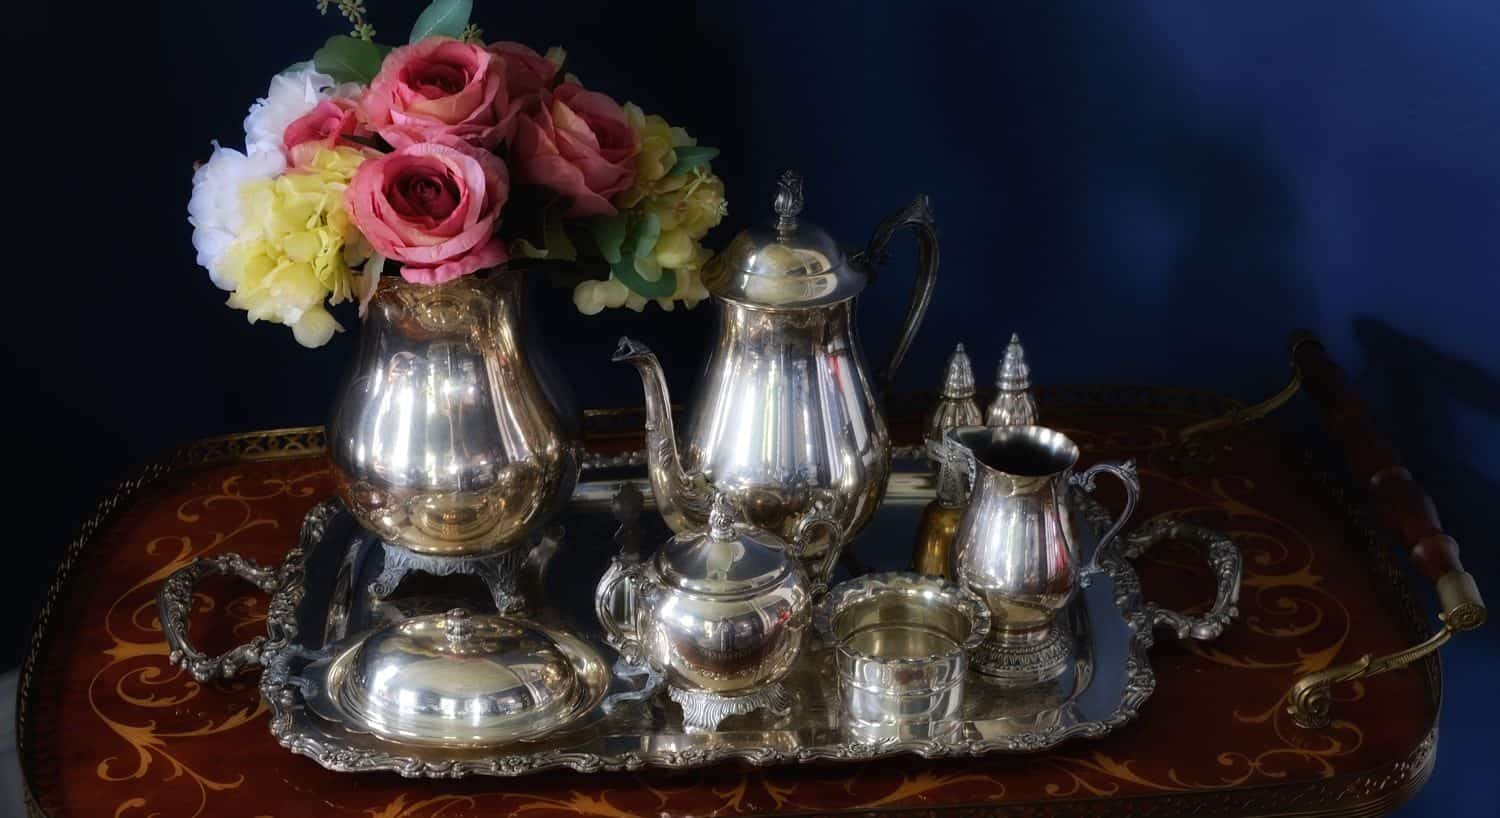 Silver tea set on a silver tray next to vase of fresh pink, yellow, and white flowers